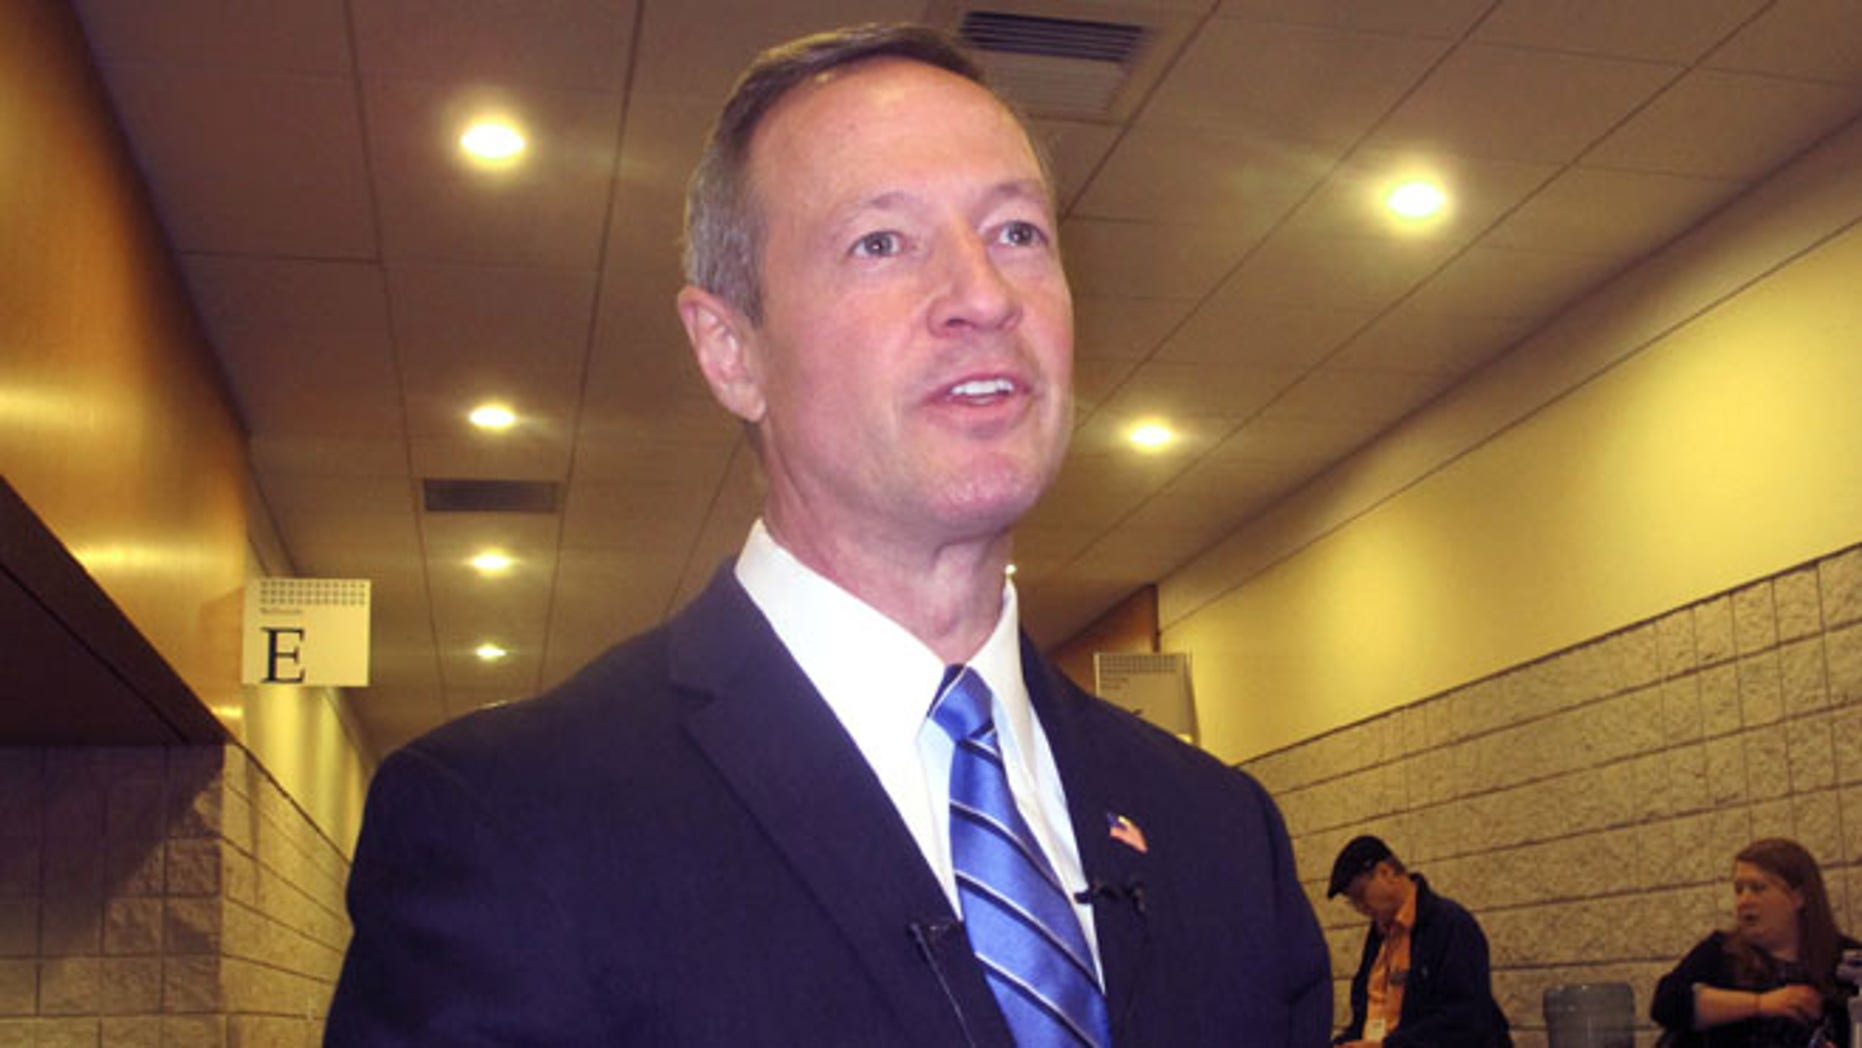 FILE: Feb. 28, 2014: Former Maryland Gov. Martin O'Malley at a conference hosted by the South Carolina Democratic Party in Myrtle Beach, S.C.